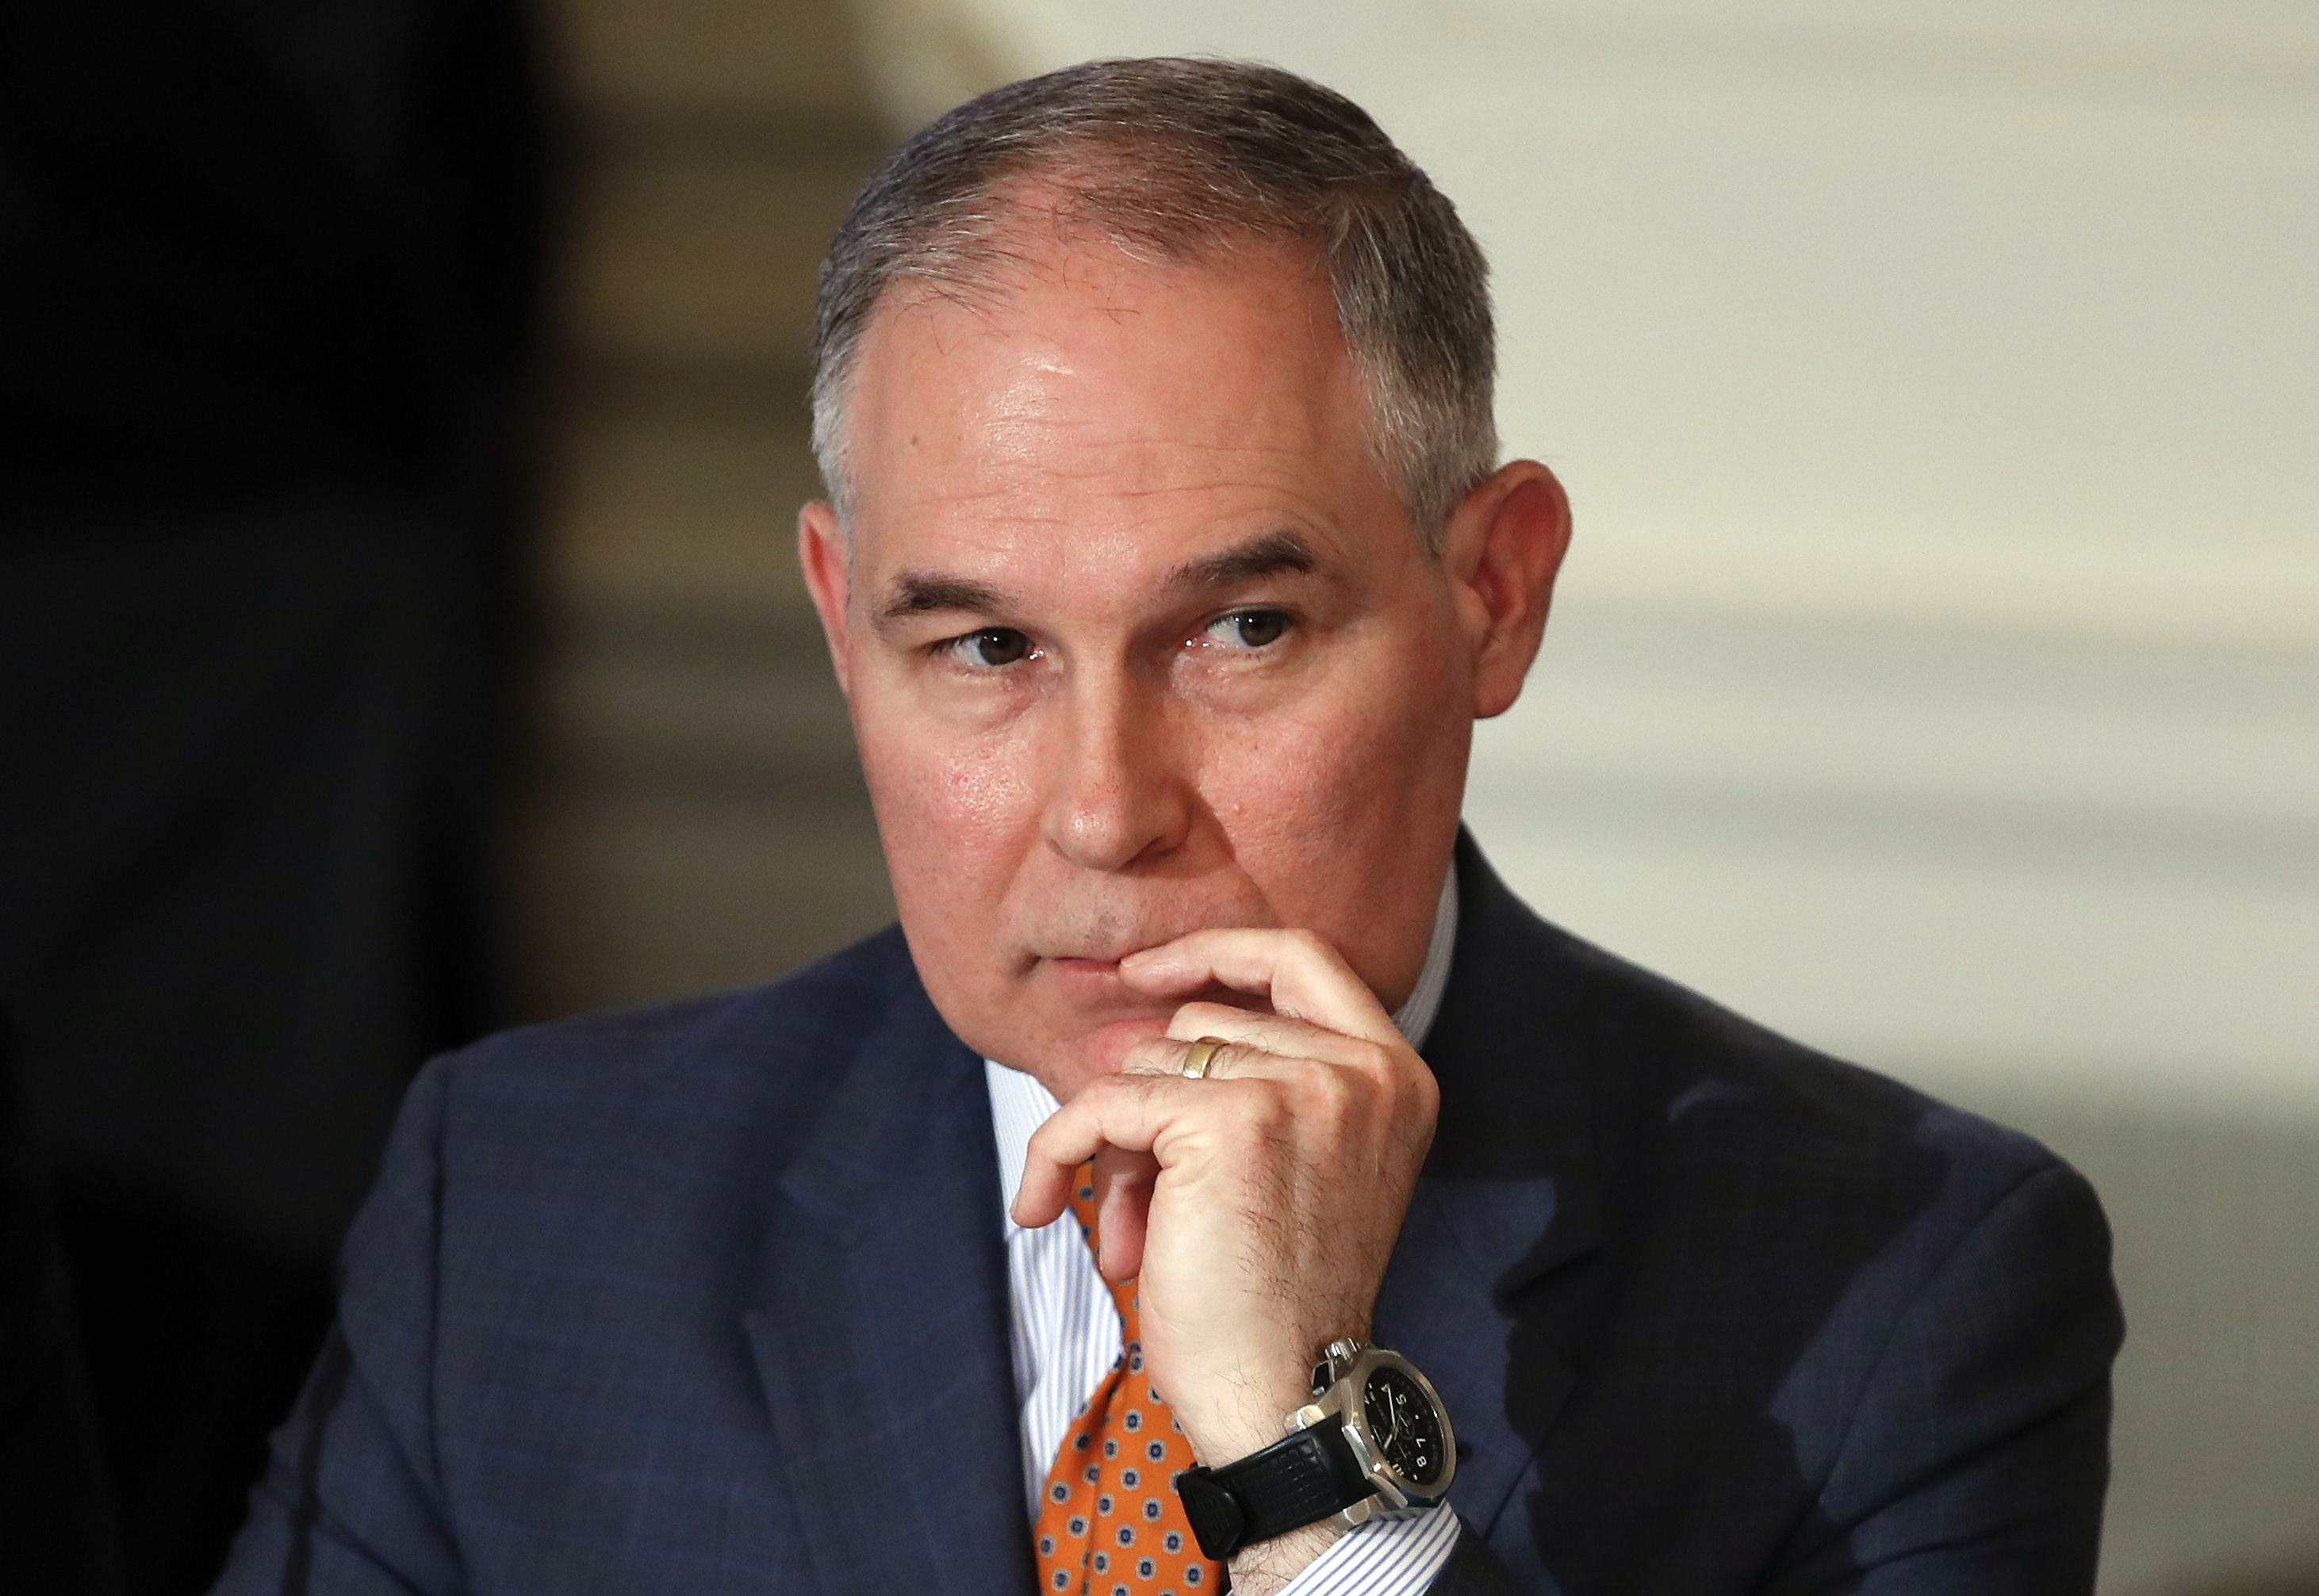 Environmental Protection Agency Administrator Scott Pruitt attends a meeting with state and local officials and President Donald Trump about infrastructure in the State Dining Room of the White House in Washington.